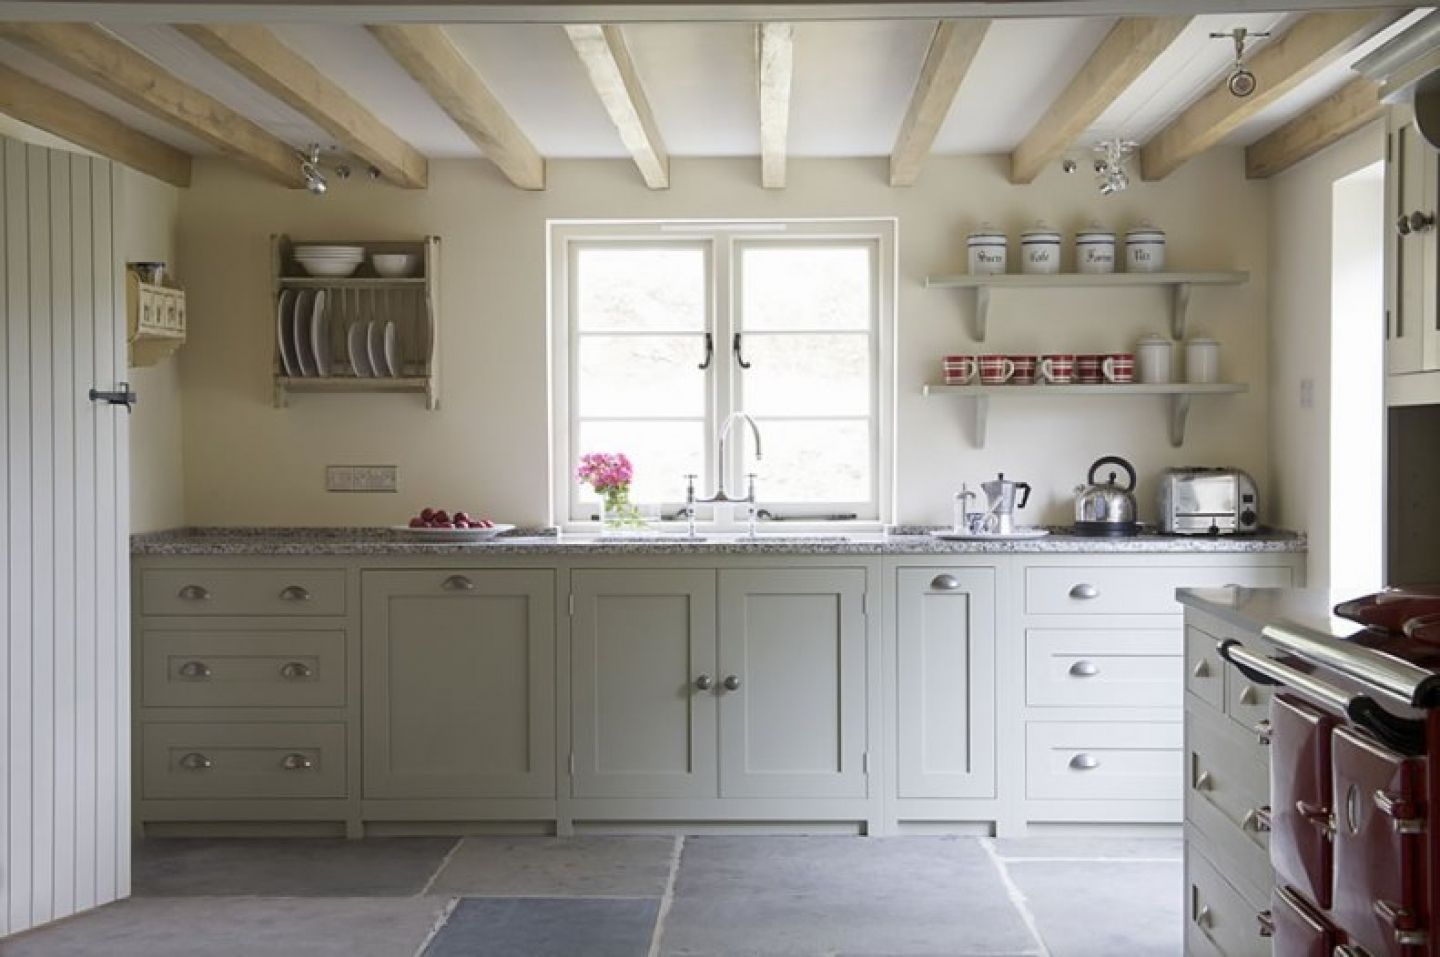 modern country kitchens. Unusual Small Cottage Kitchen Ideas Featuring Shabby White Wooden Cabinets With Solid Brushed Cup And Knobs Handle Plus Grey Granite Countertop As Well Modern Country Kitchens O